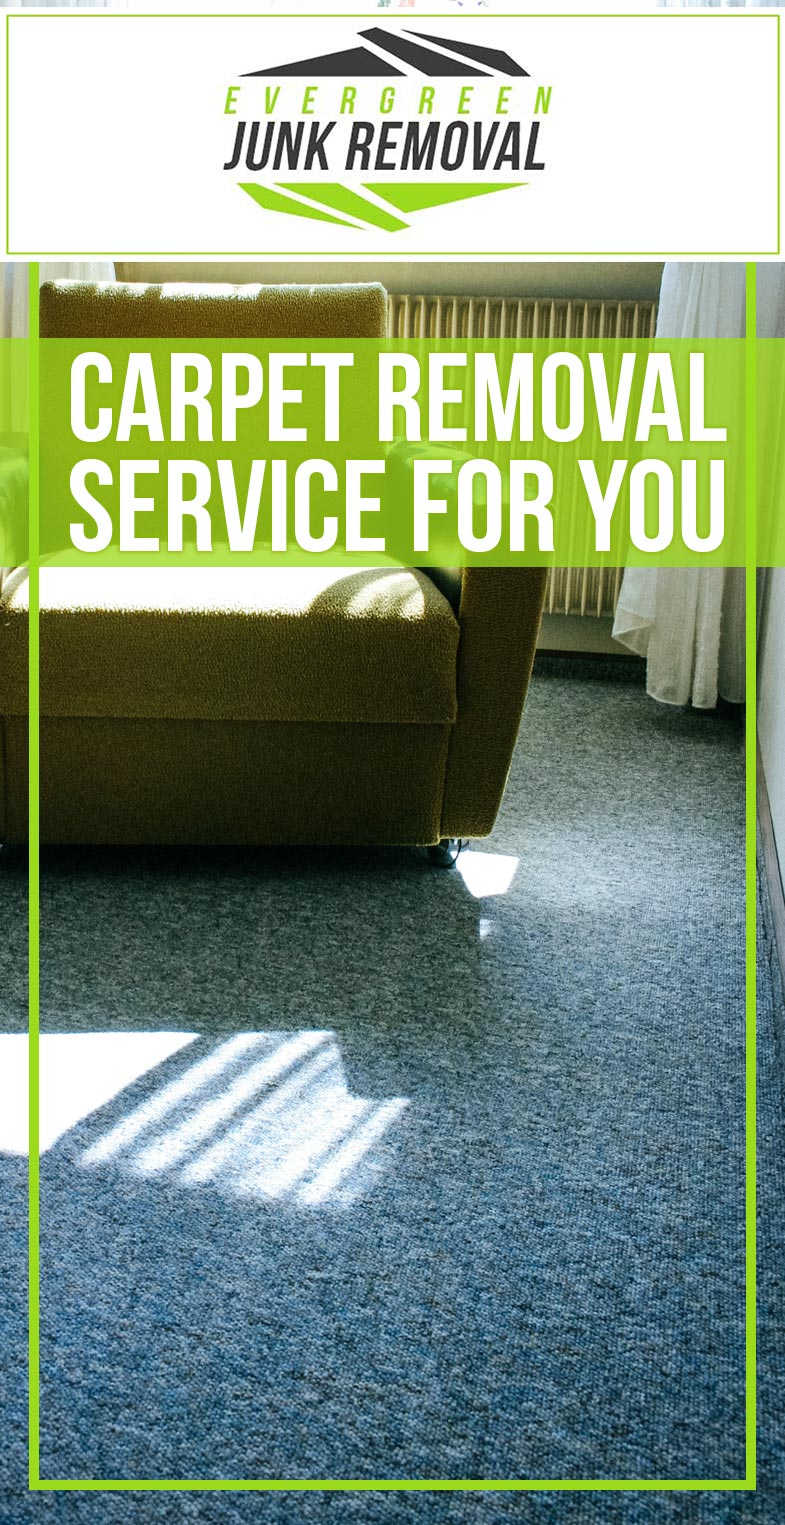 Pompano Beach Carpet Removal